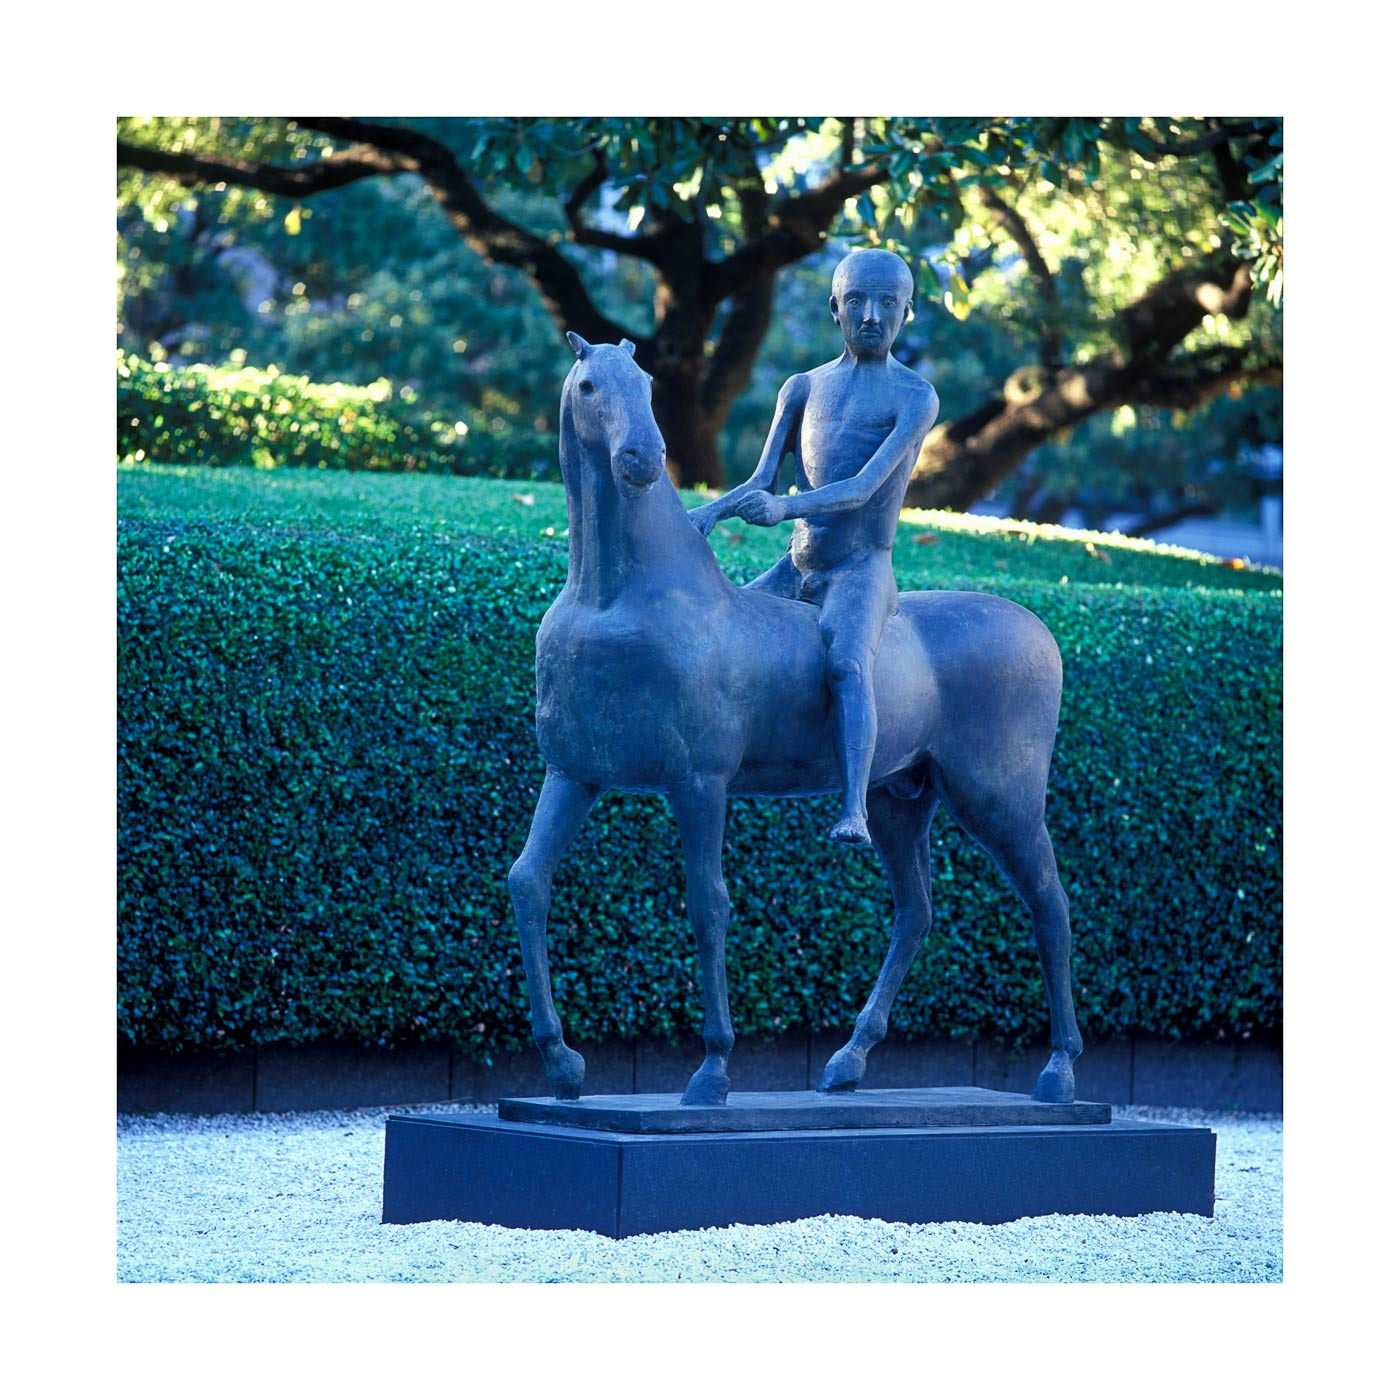 MARINI SCULPTURE IN MFAH GARDEN